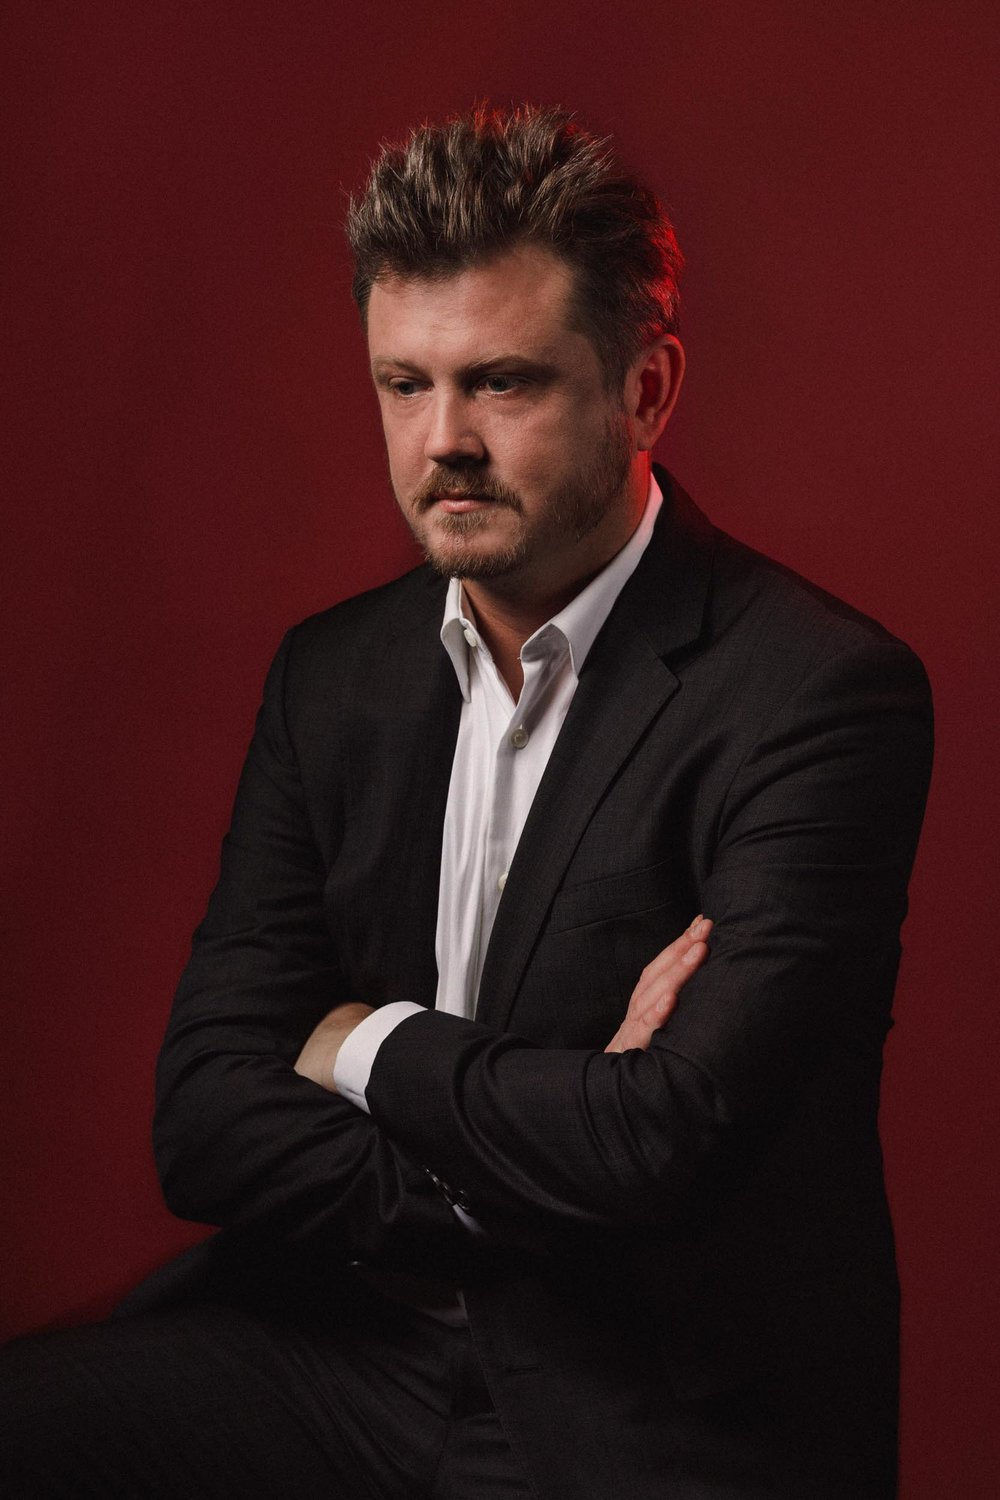 Beau Willimon Fall Preview_EMK_1.jpg